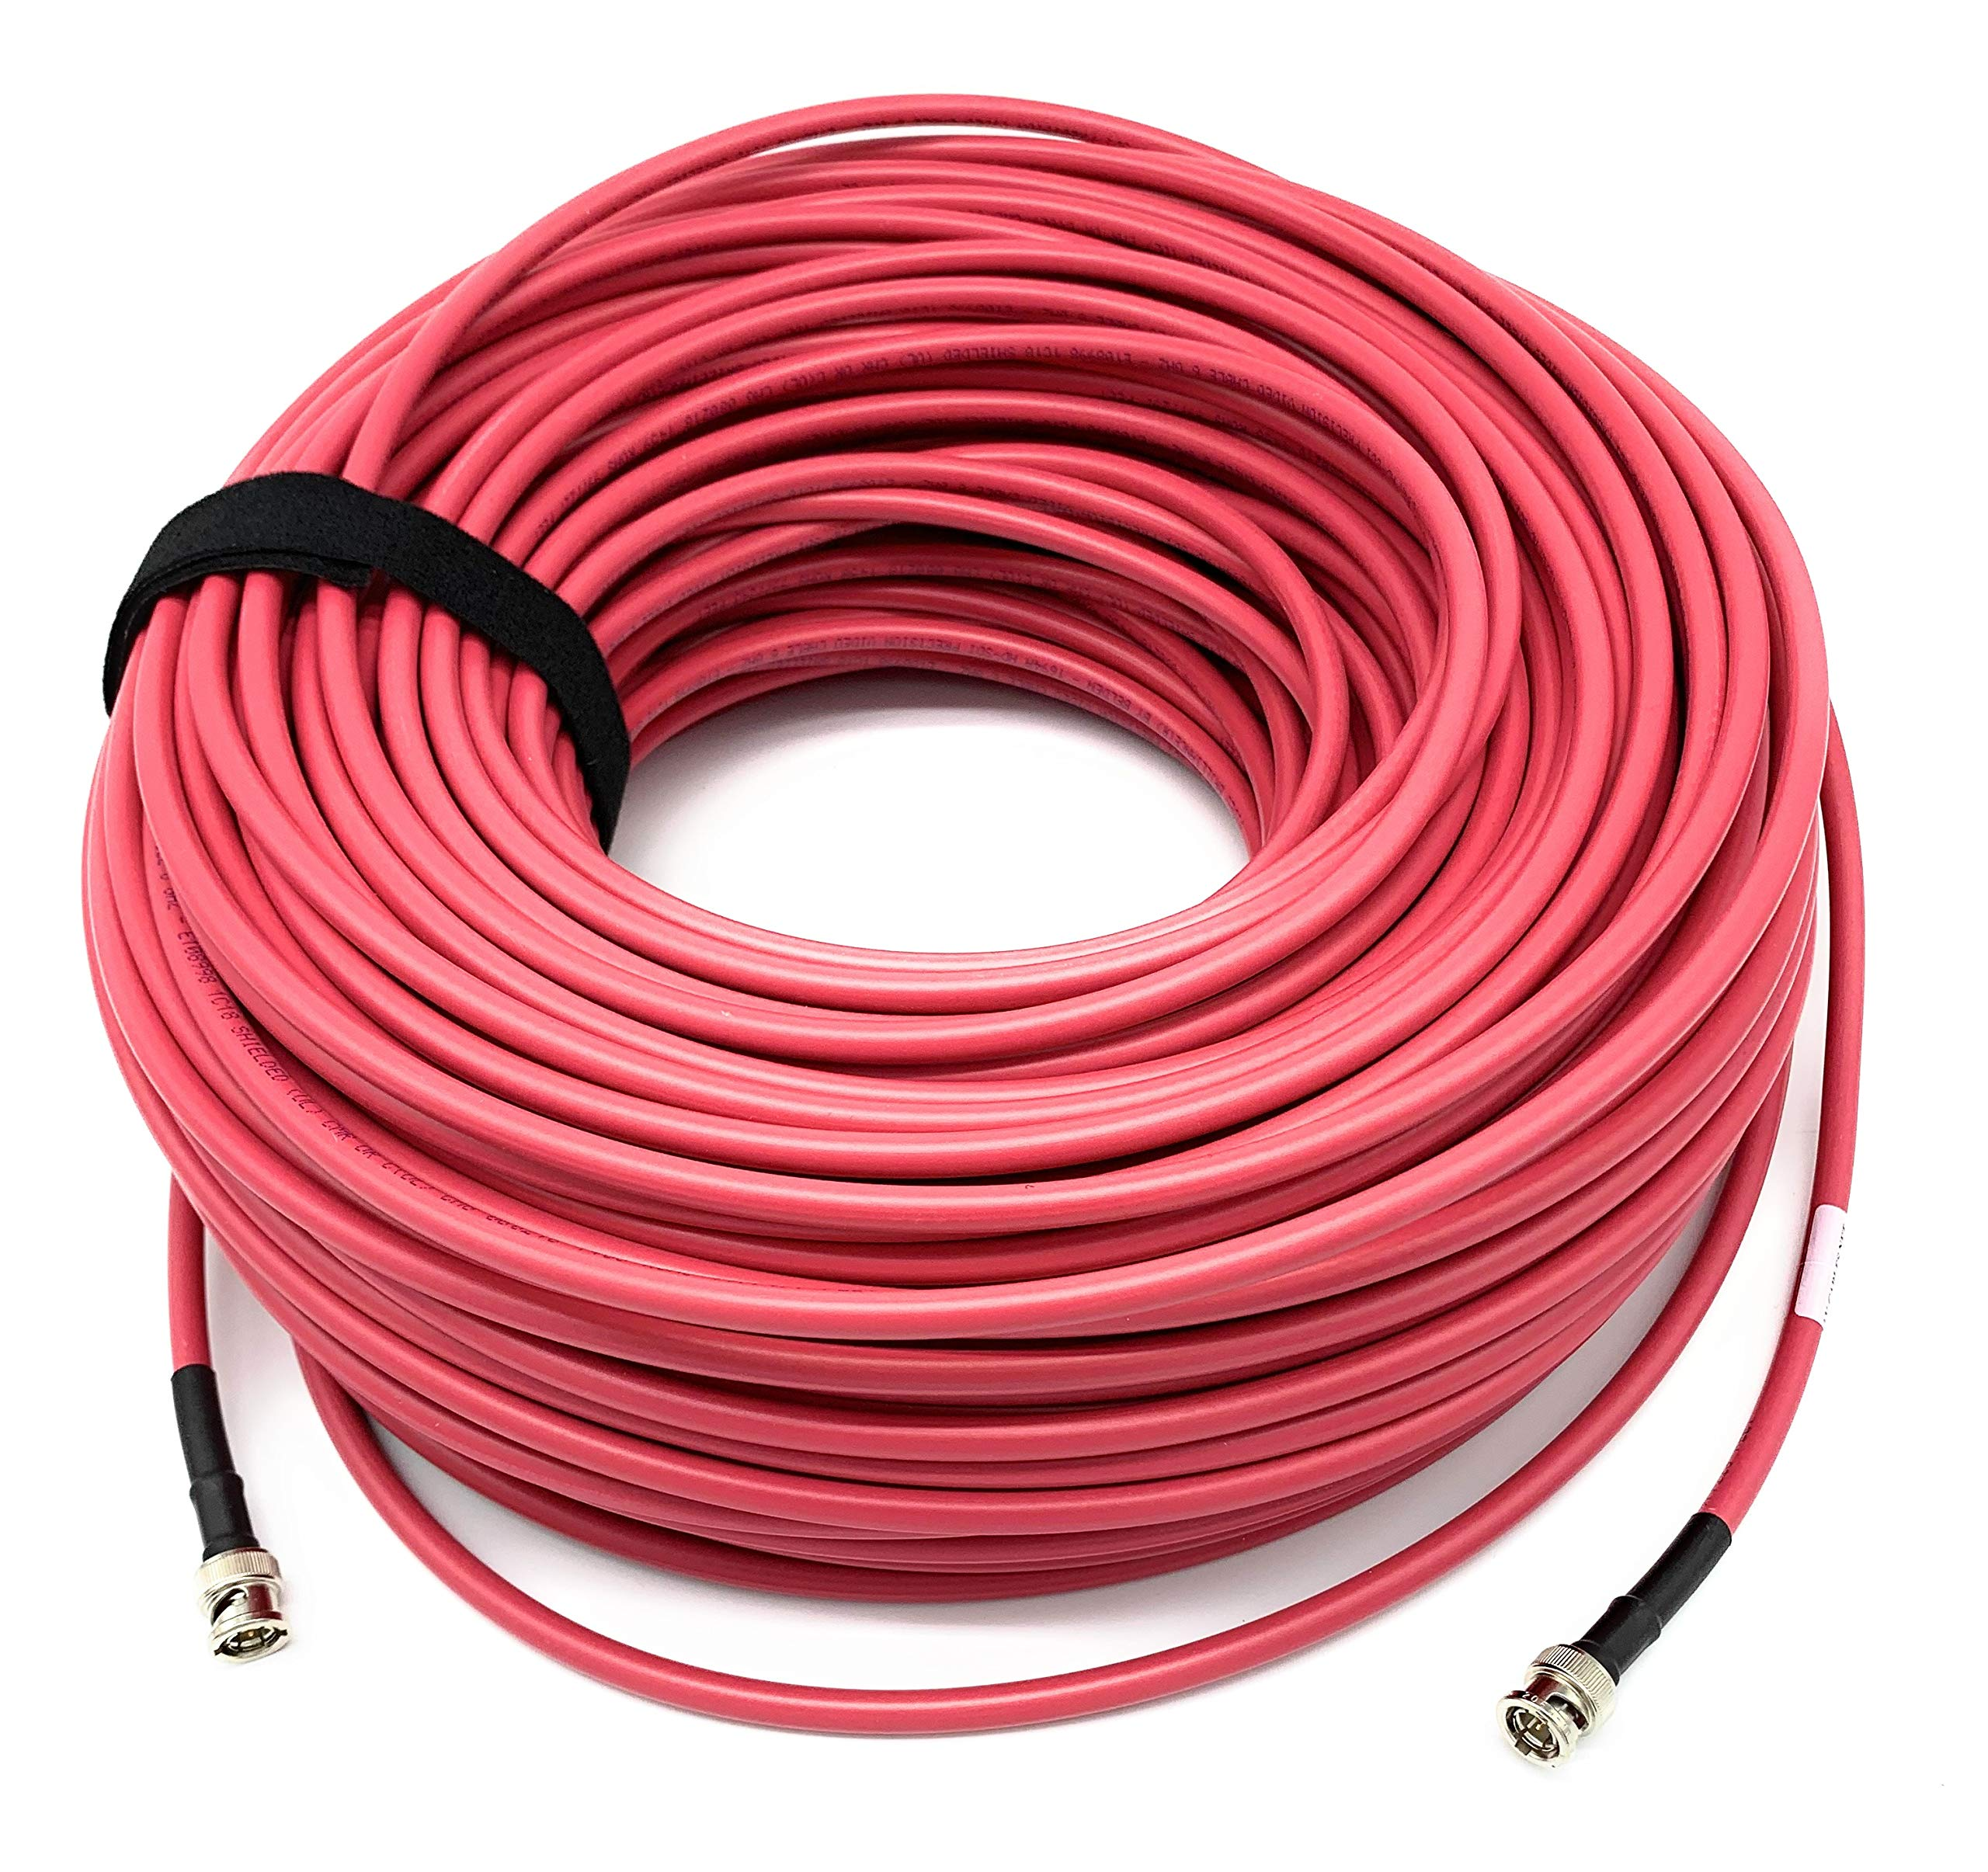 AV-Cables 3G/6G HD SDI BNC Cable- Belden 1694a RG6 - Red (200ft)